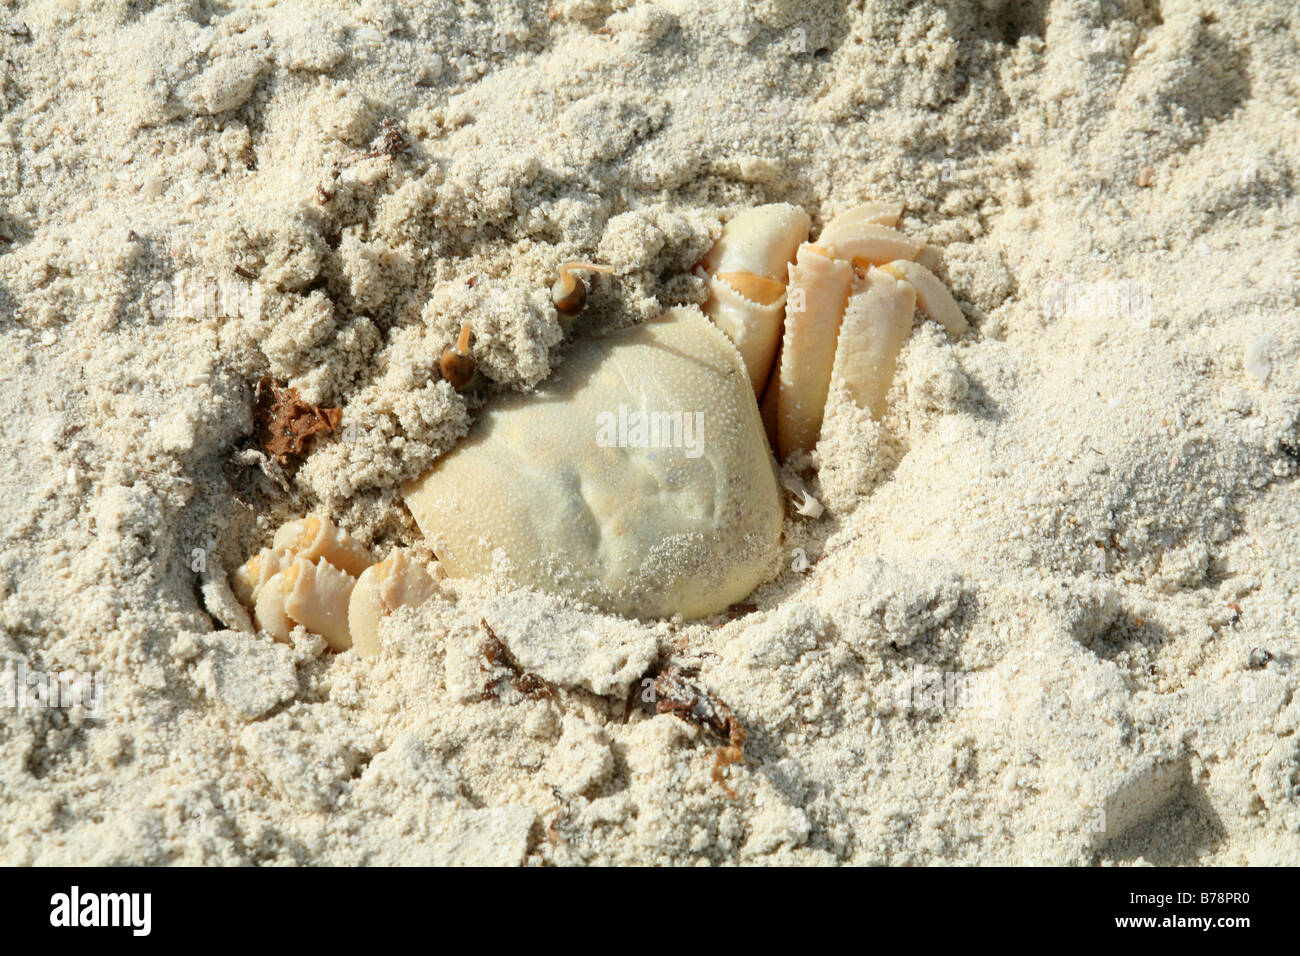 A Ghost Crab (Ocypode saratan) concealing itself from predators on a beach in north-east Qatar,Arabia. - Stock Image